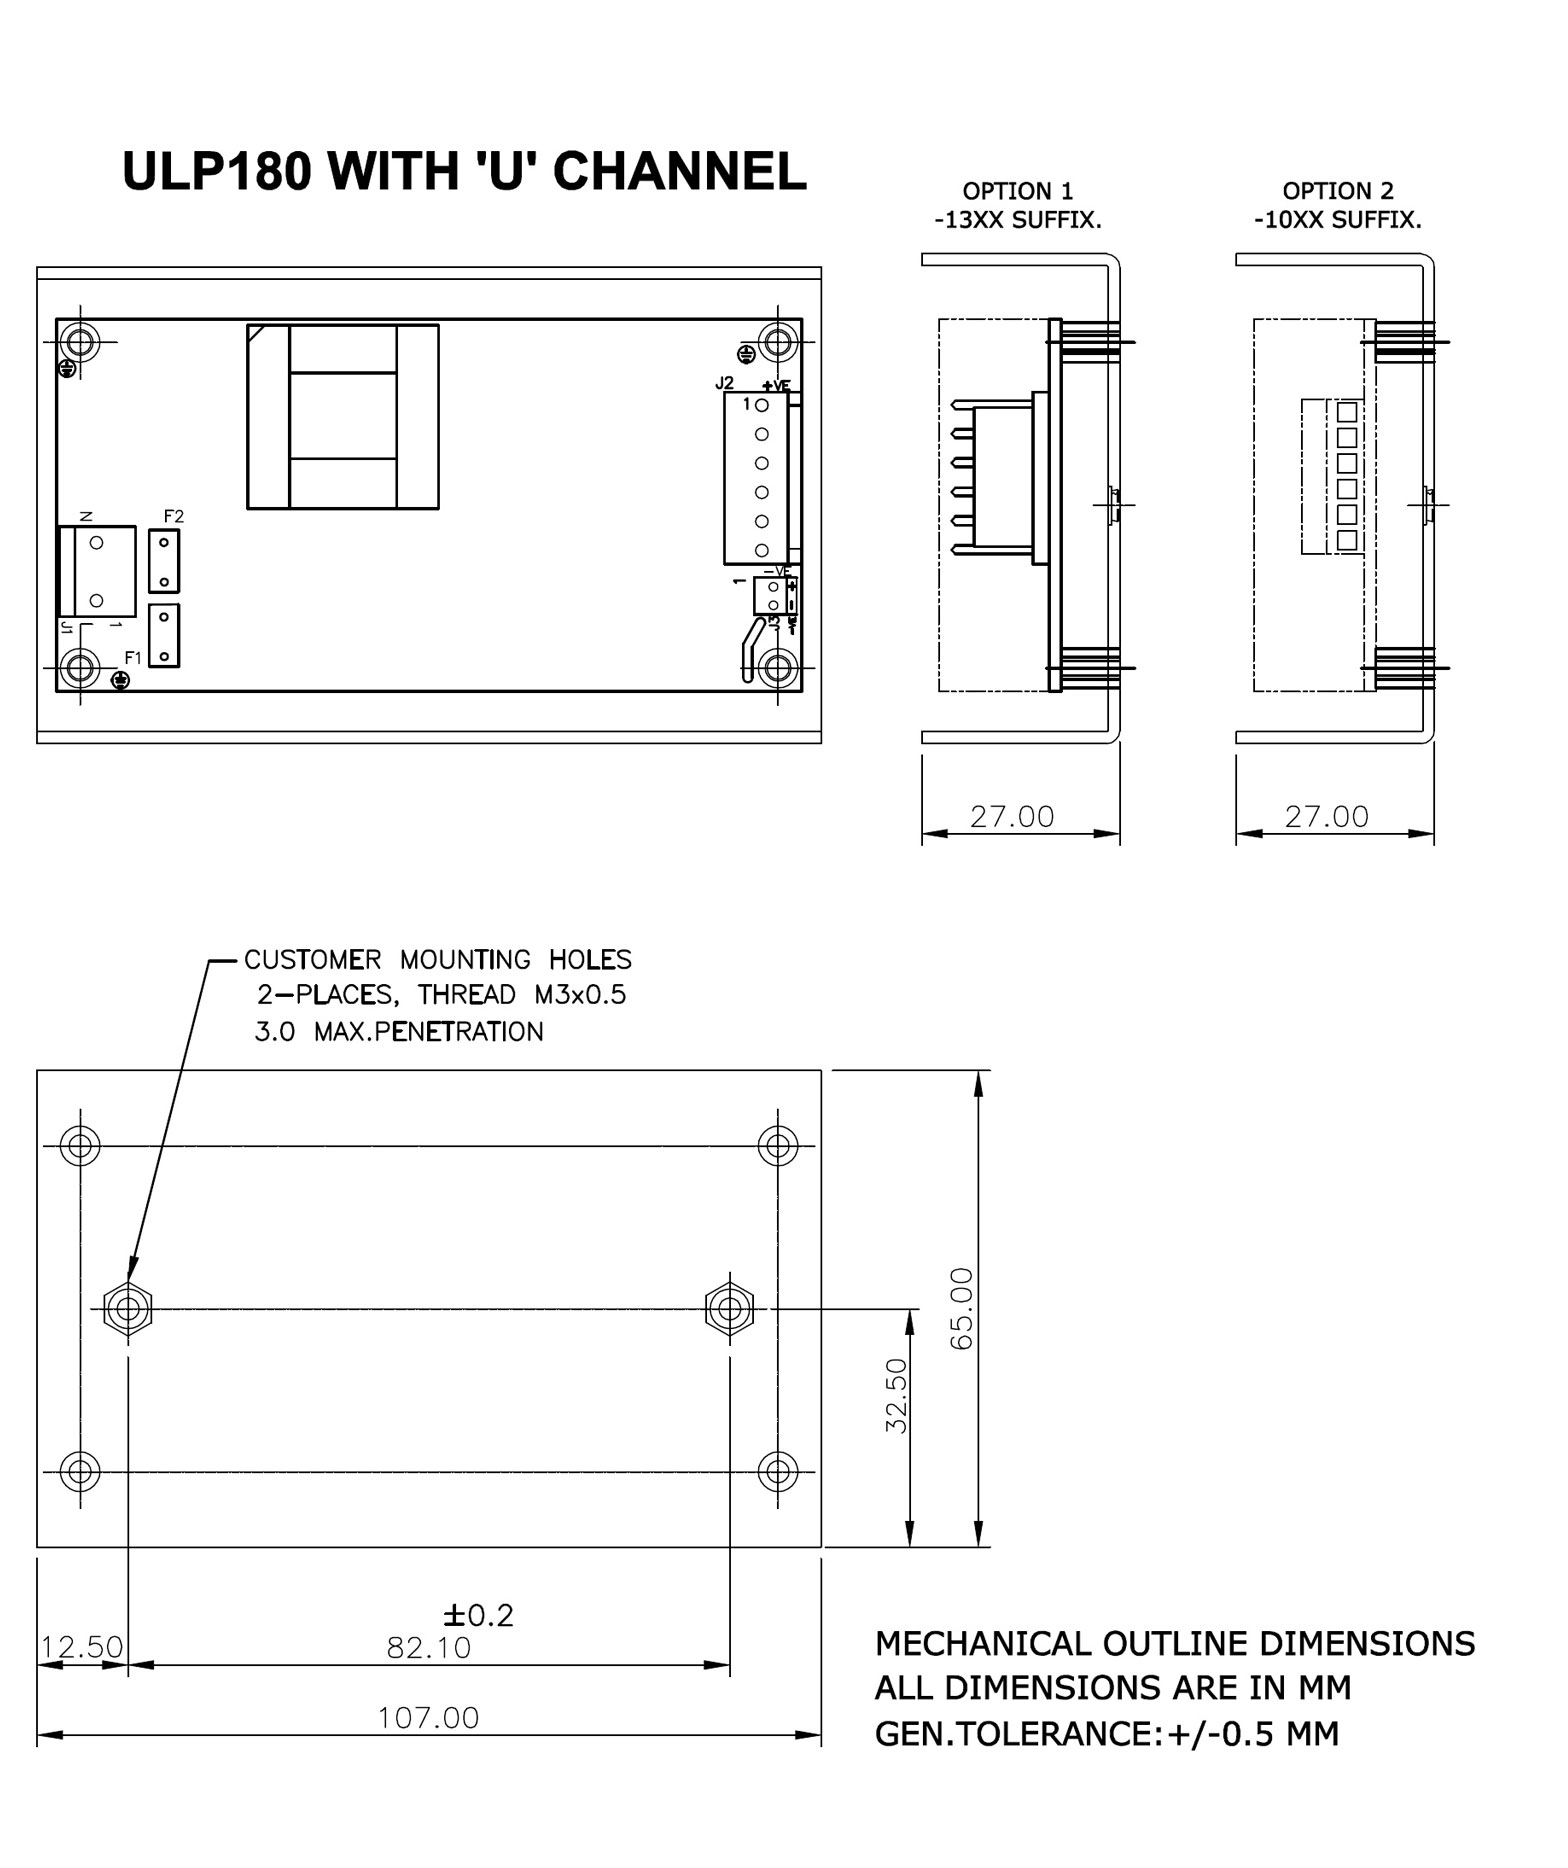 ULP180-U CHANNEL